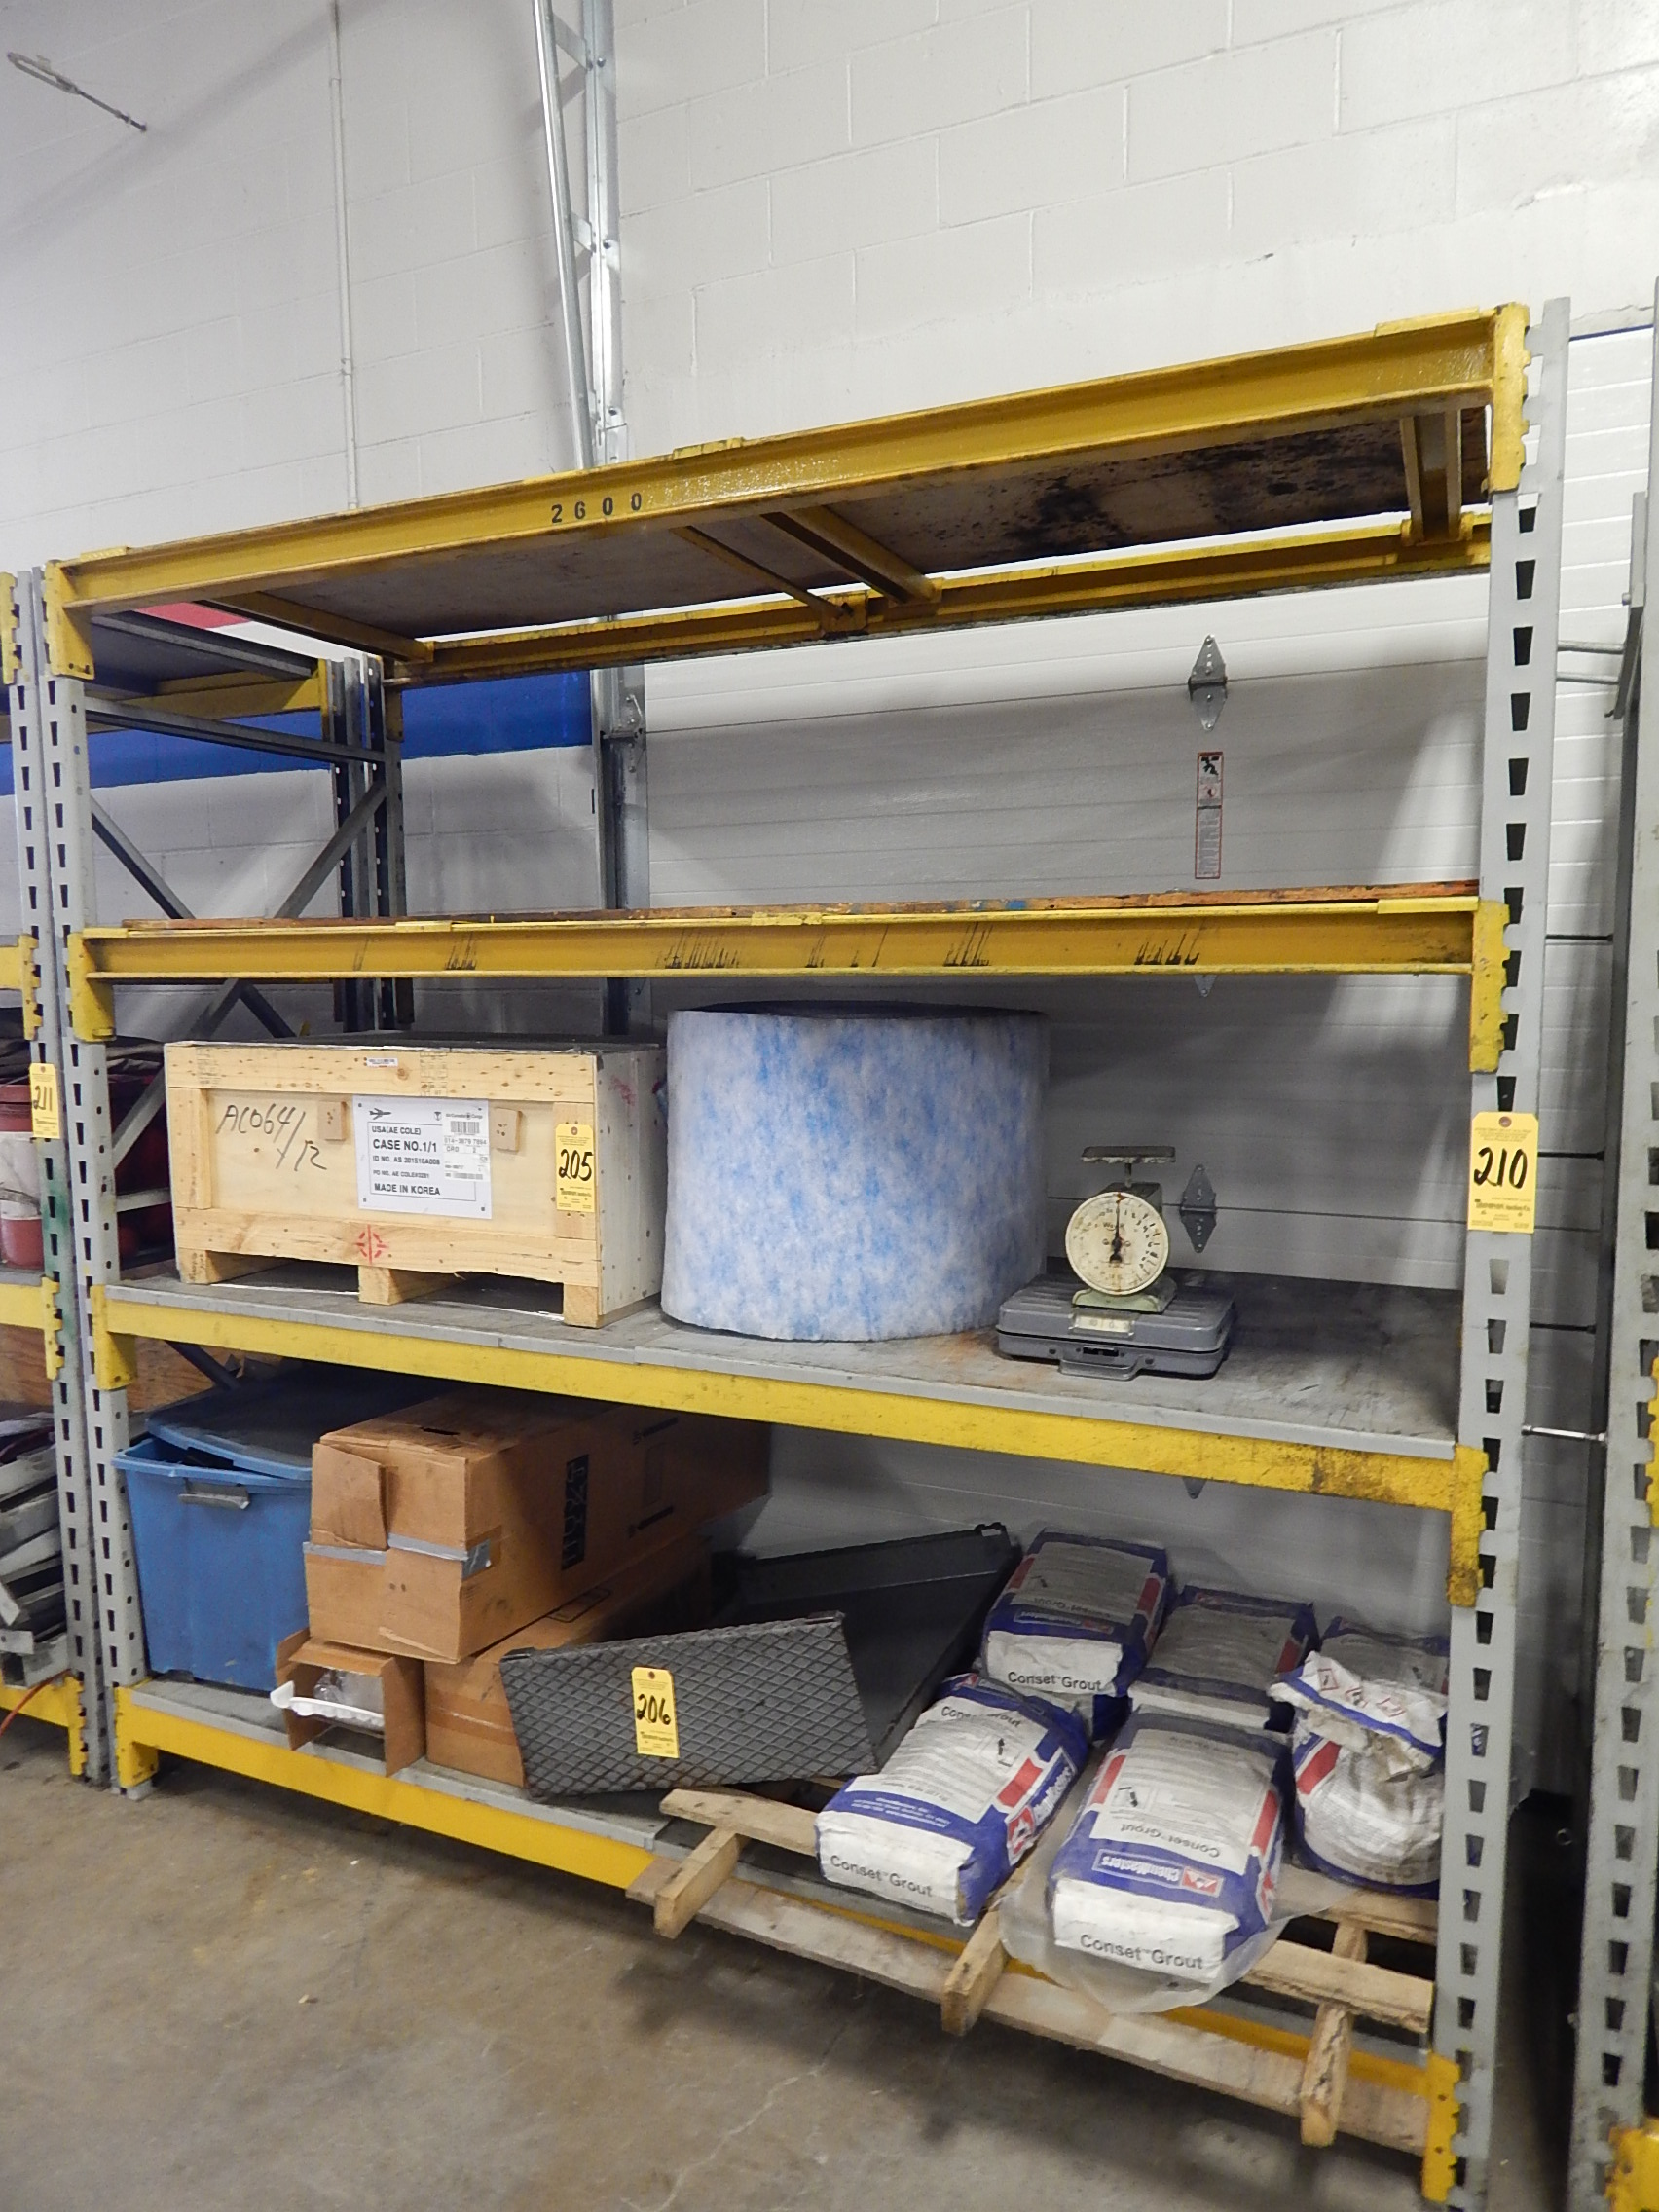 #A78C24  210 Pallet Shelving 1 Section 8 Ft. High X 8 Ft. Wide X 3 Ft. Deep with 1704x2272 px of Brand New 2 Foot Wide Shelves 22721704 pic @ avoidforclosure.info